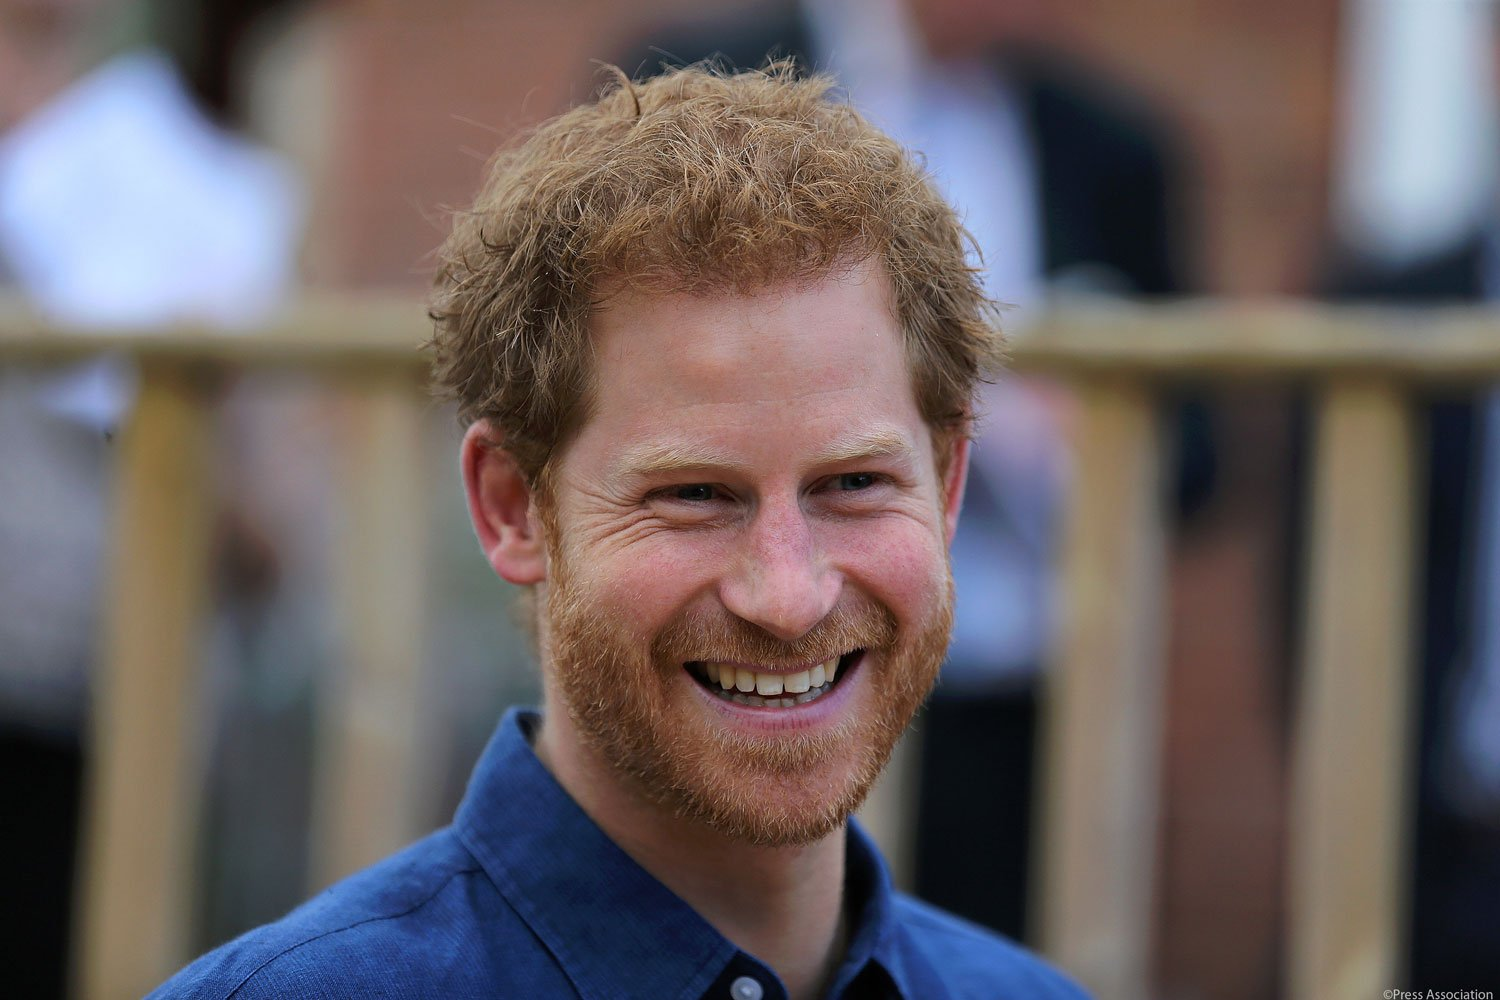 Wishing HRH Prince Harry a very Happy 33rd Birthday